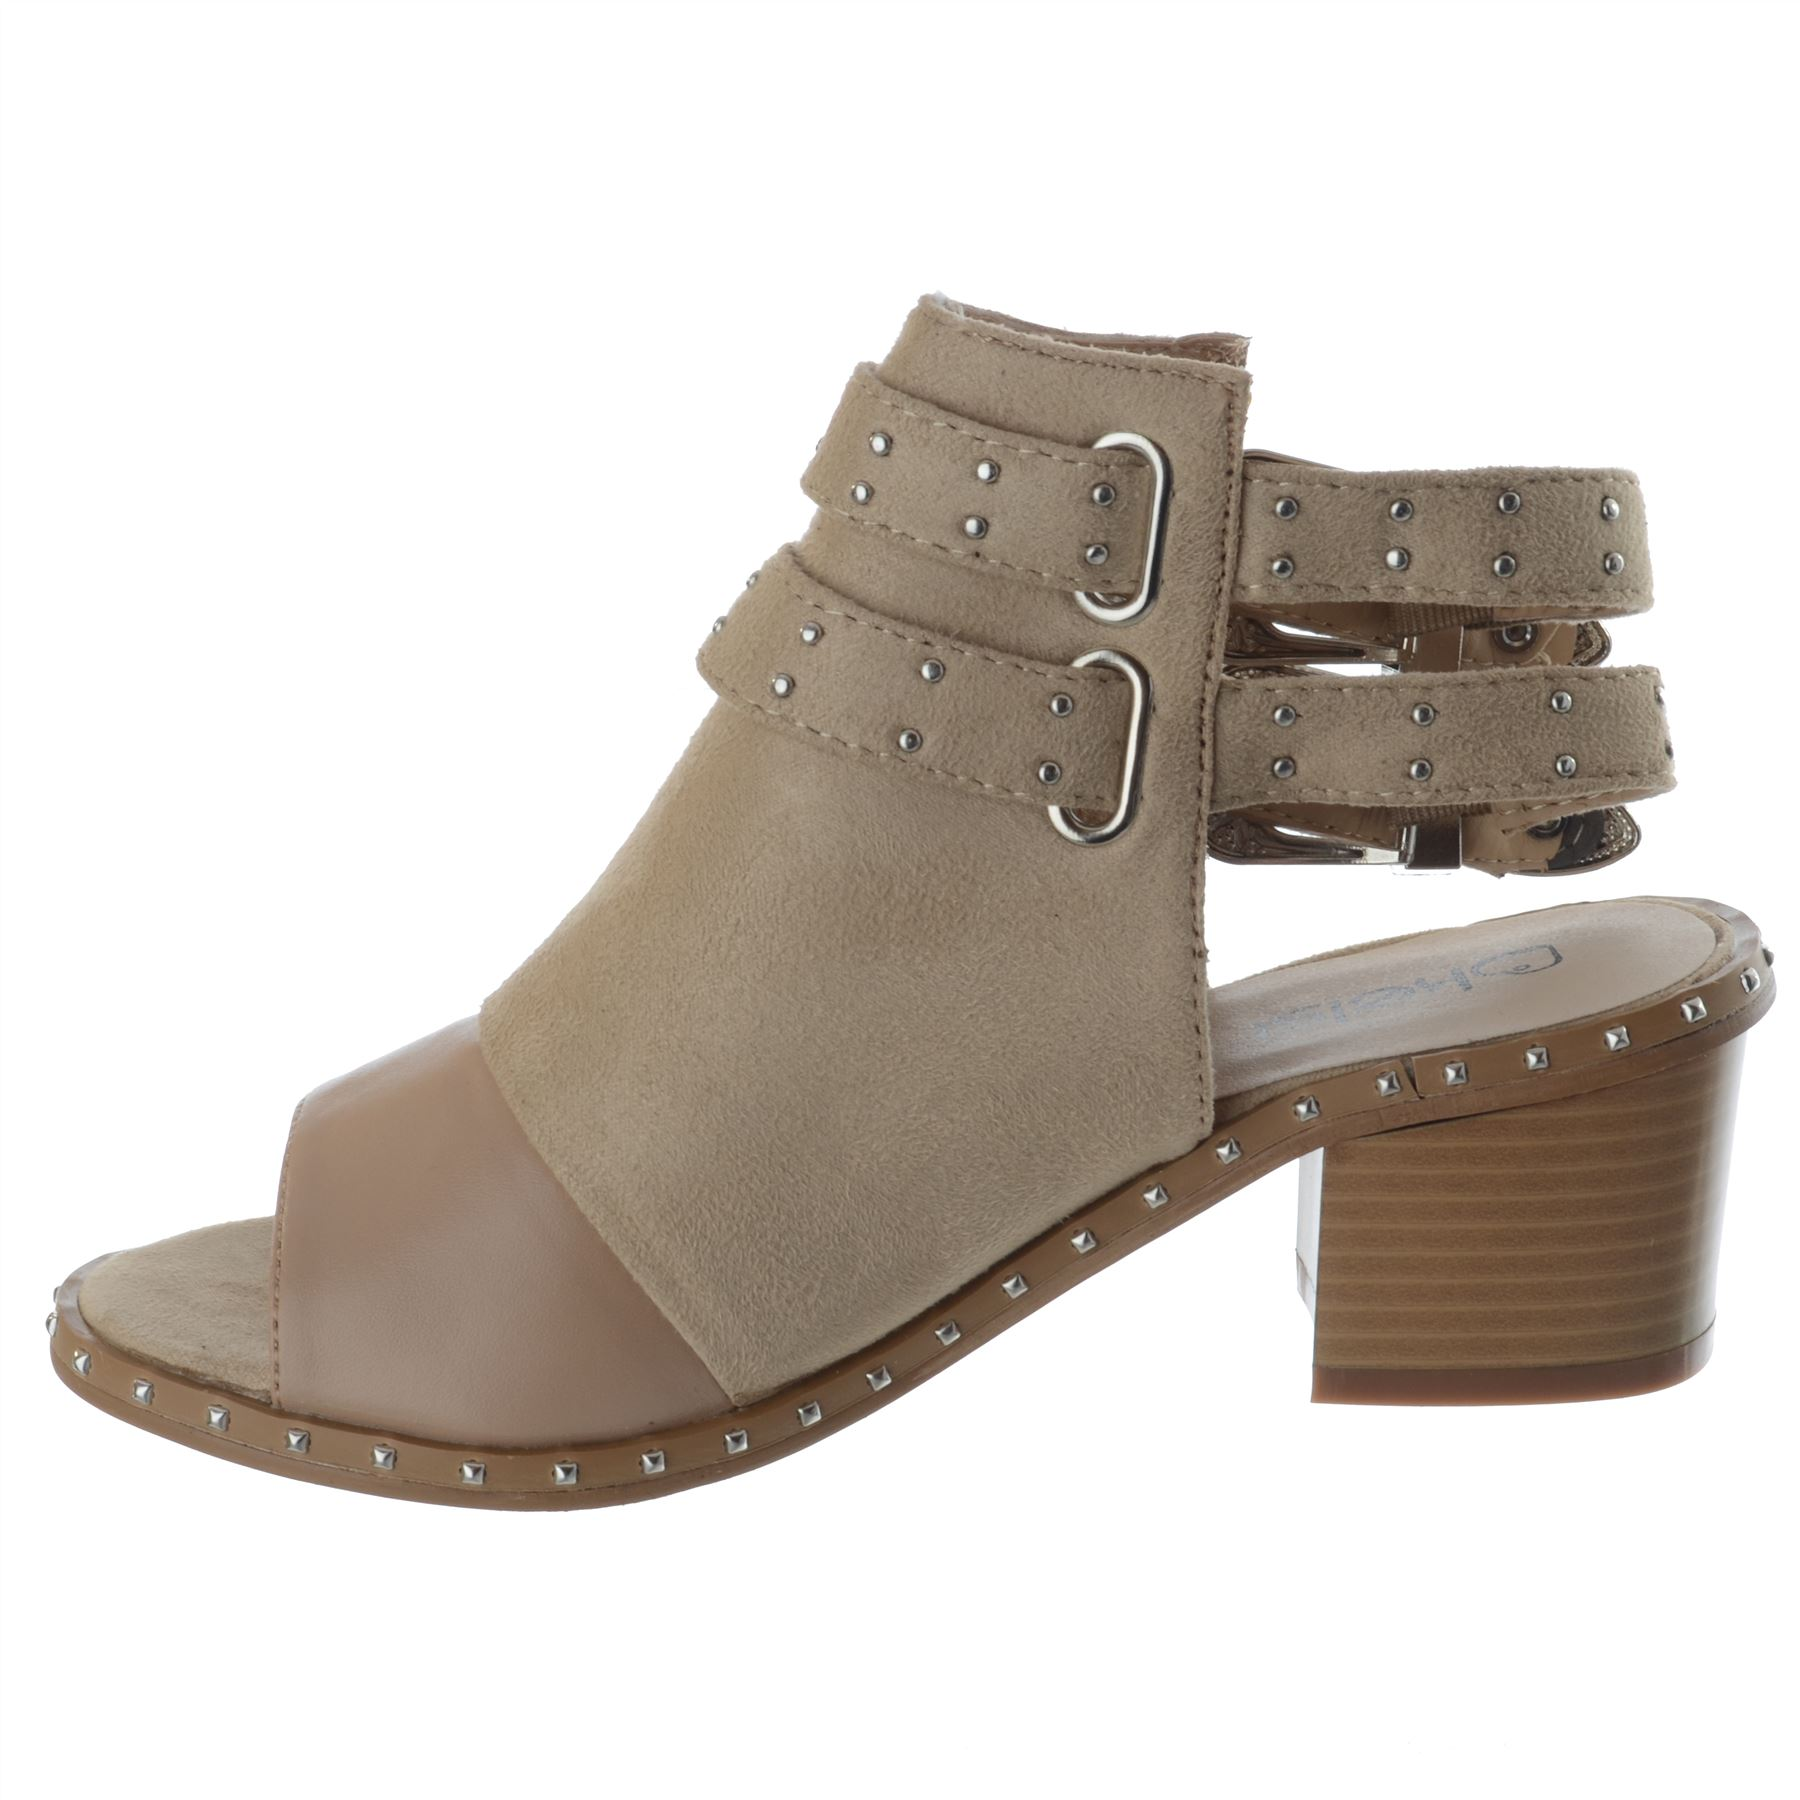 Womens-Ladies-Studded-Peep-Toe-Ankle-Strap-Chunky-Block-Heel-Sandals-Shoes-Size thumbnail 4